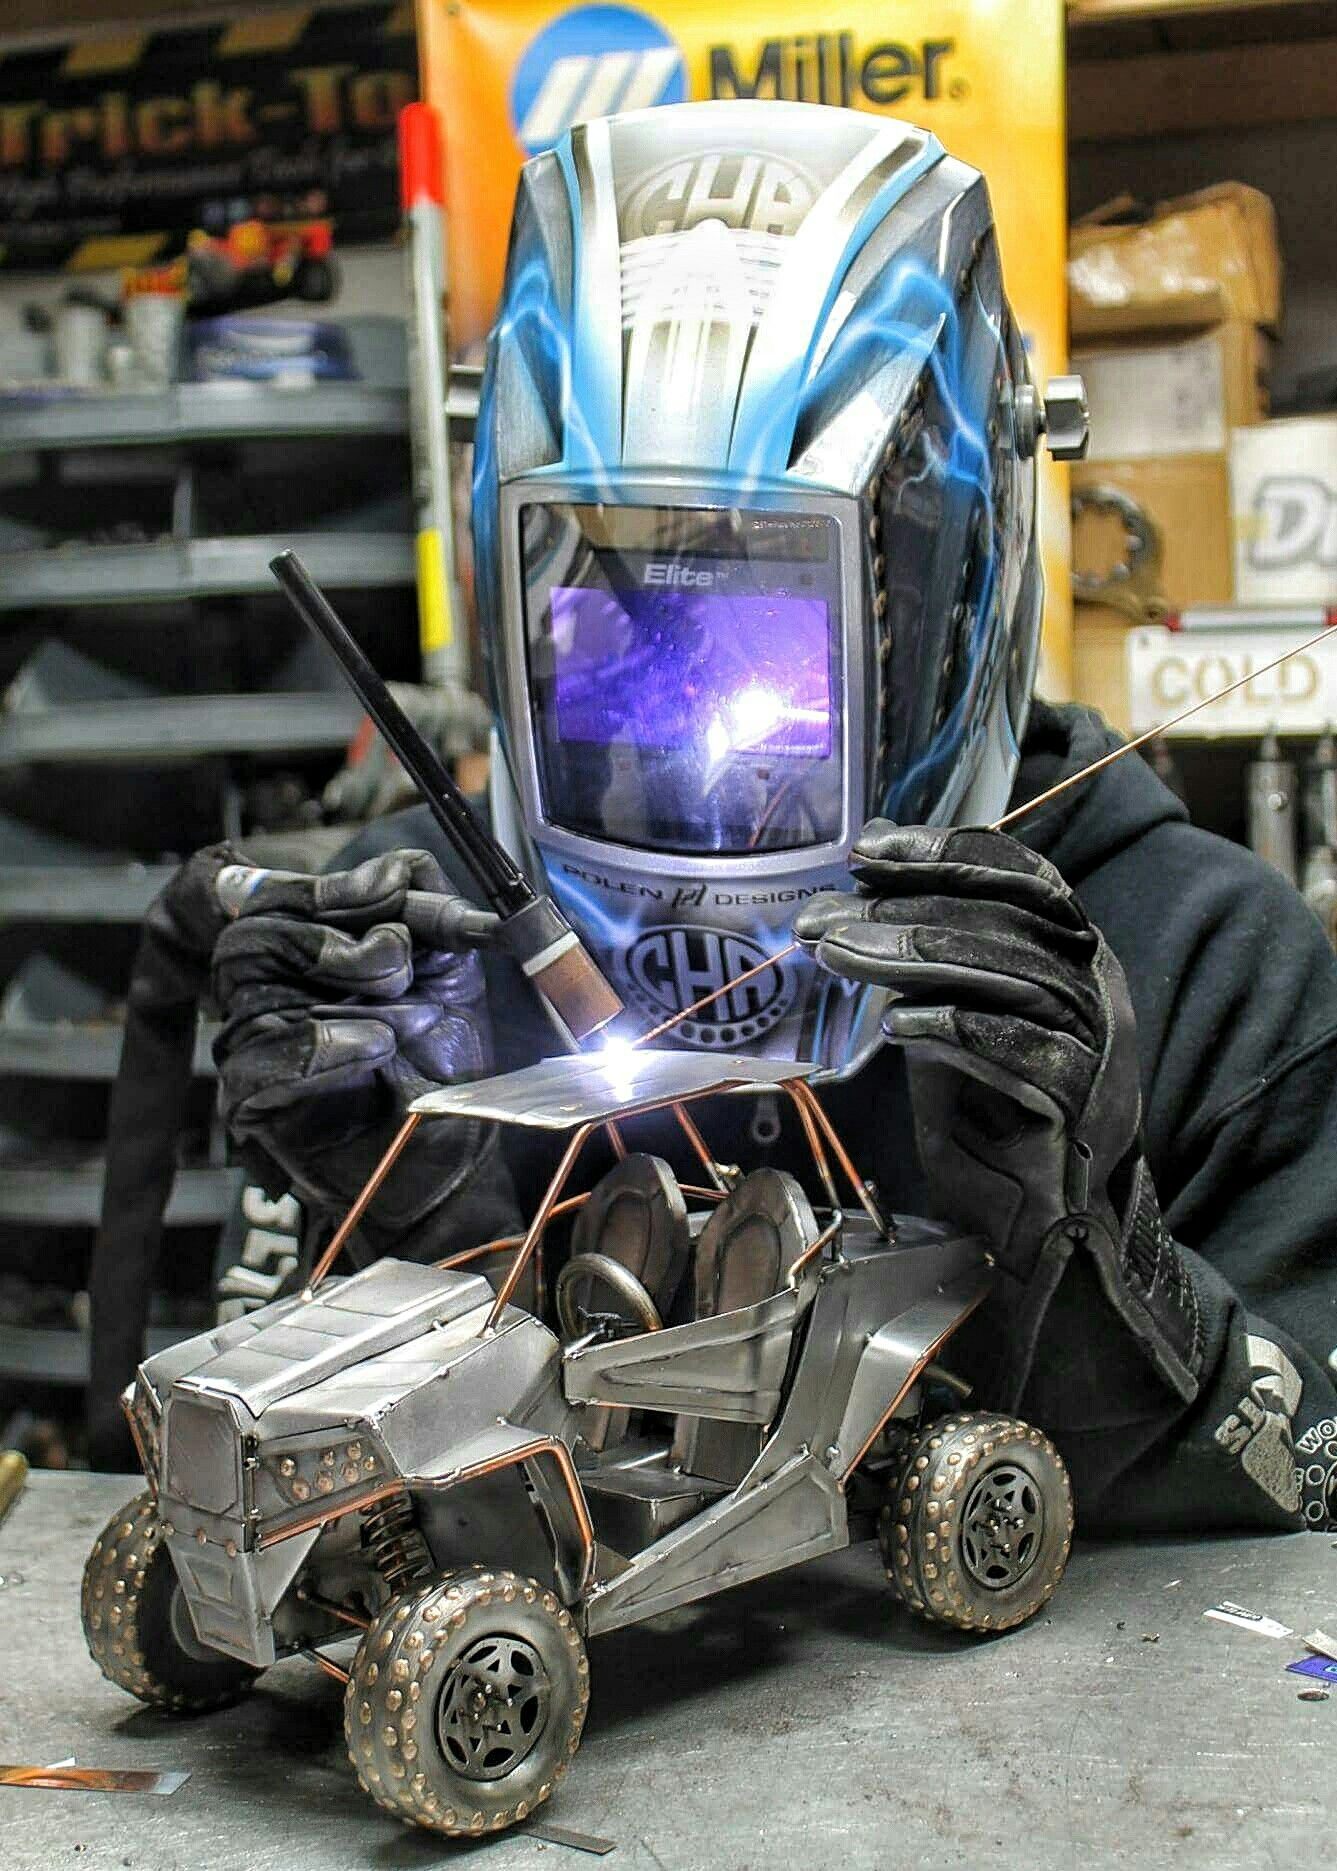 Rzr Polaris Cold Hard Art Welding Miller Welding Art Welding Art Projects Hard Art